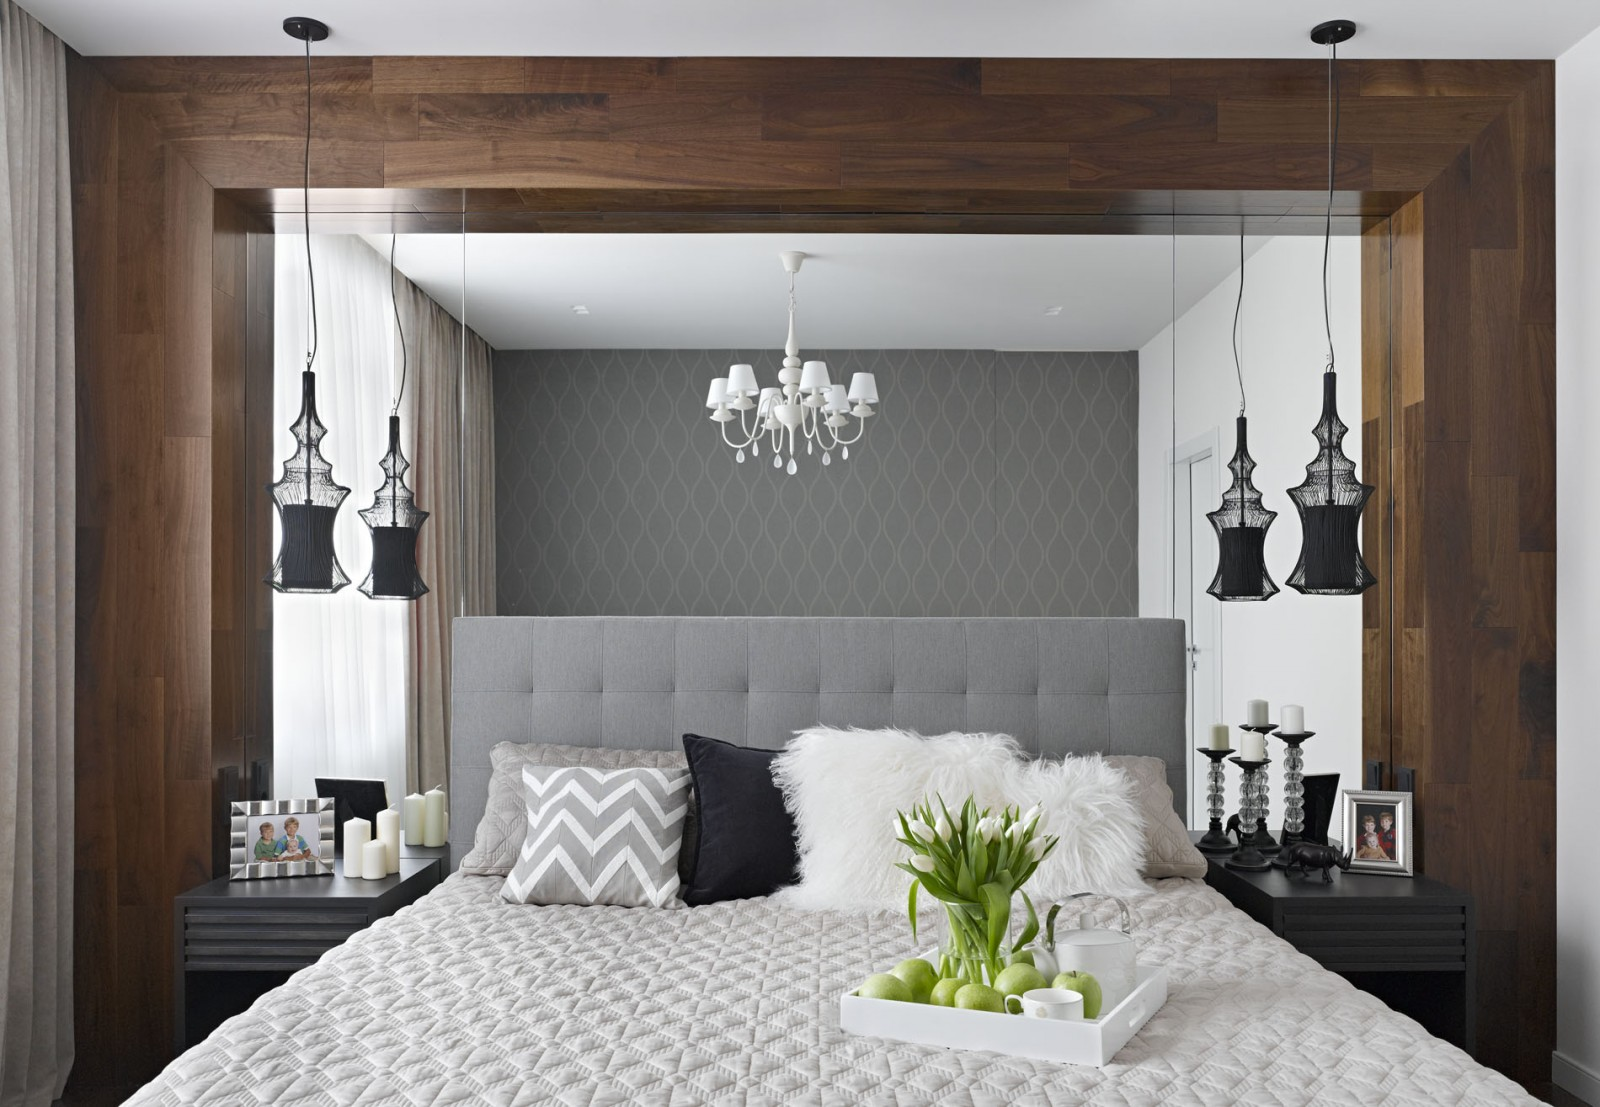 20 Best Small Modern Bedroom Ideas - Architecture Beast on Good Bedroom Ideas For Small Rooms  id=35299